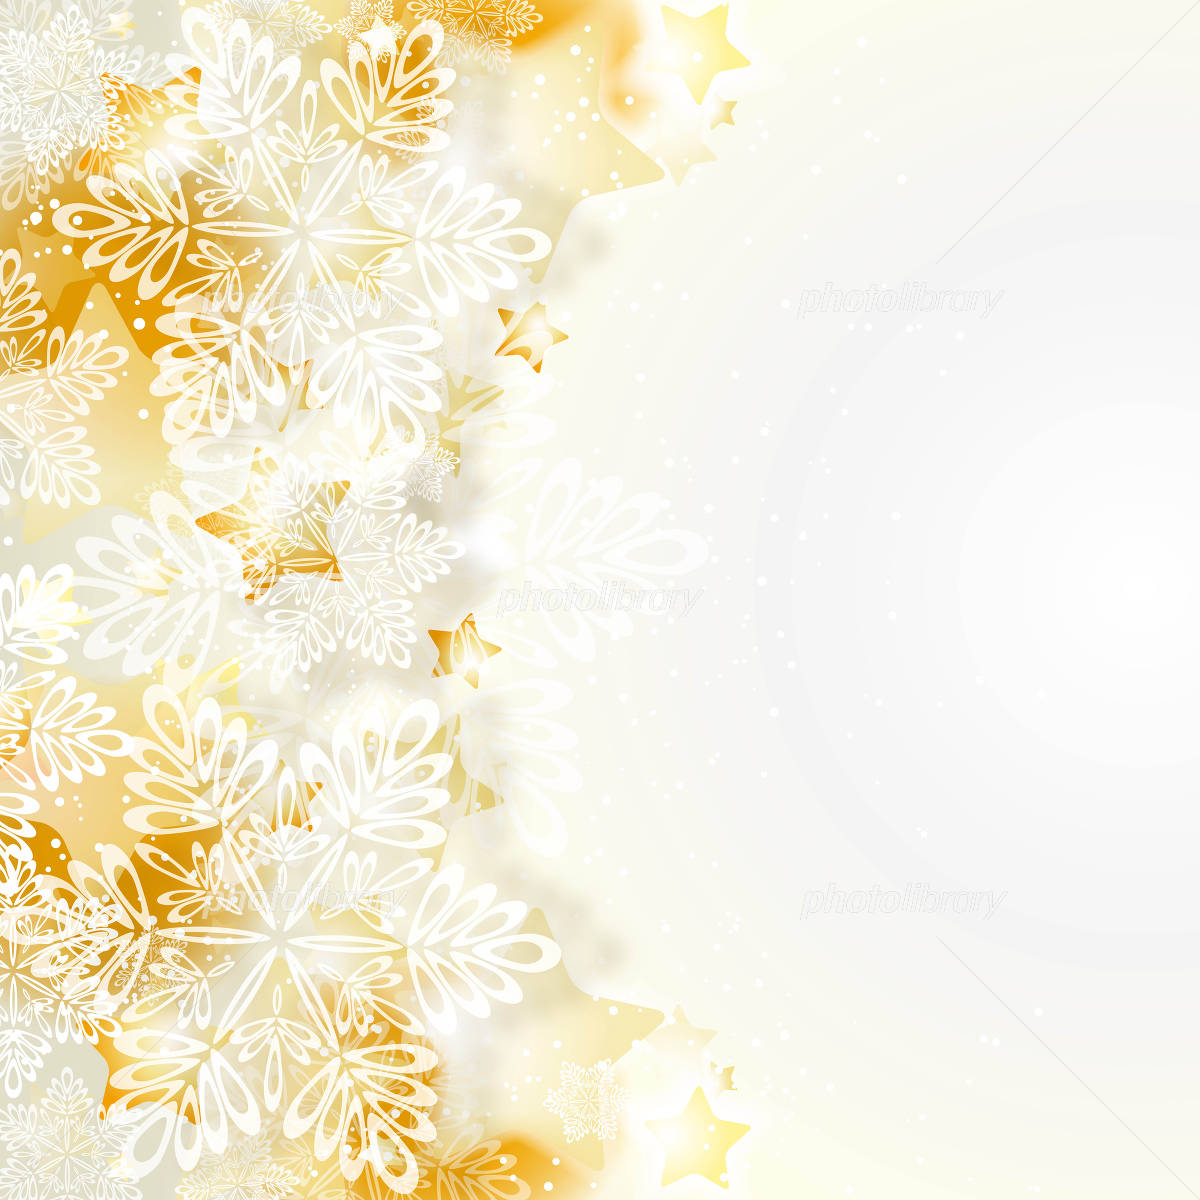 Christmas decoration イラスト素材